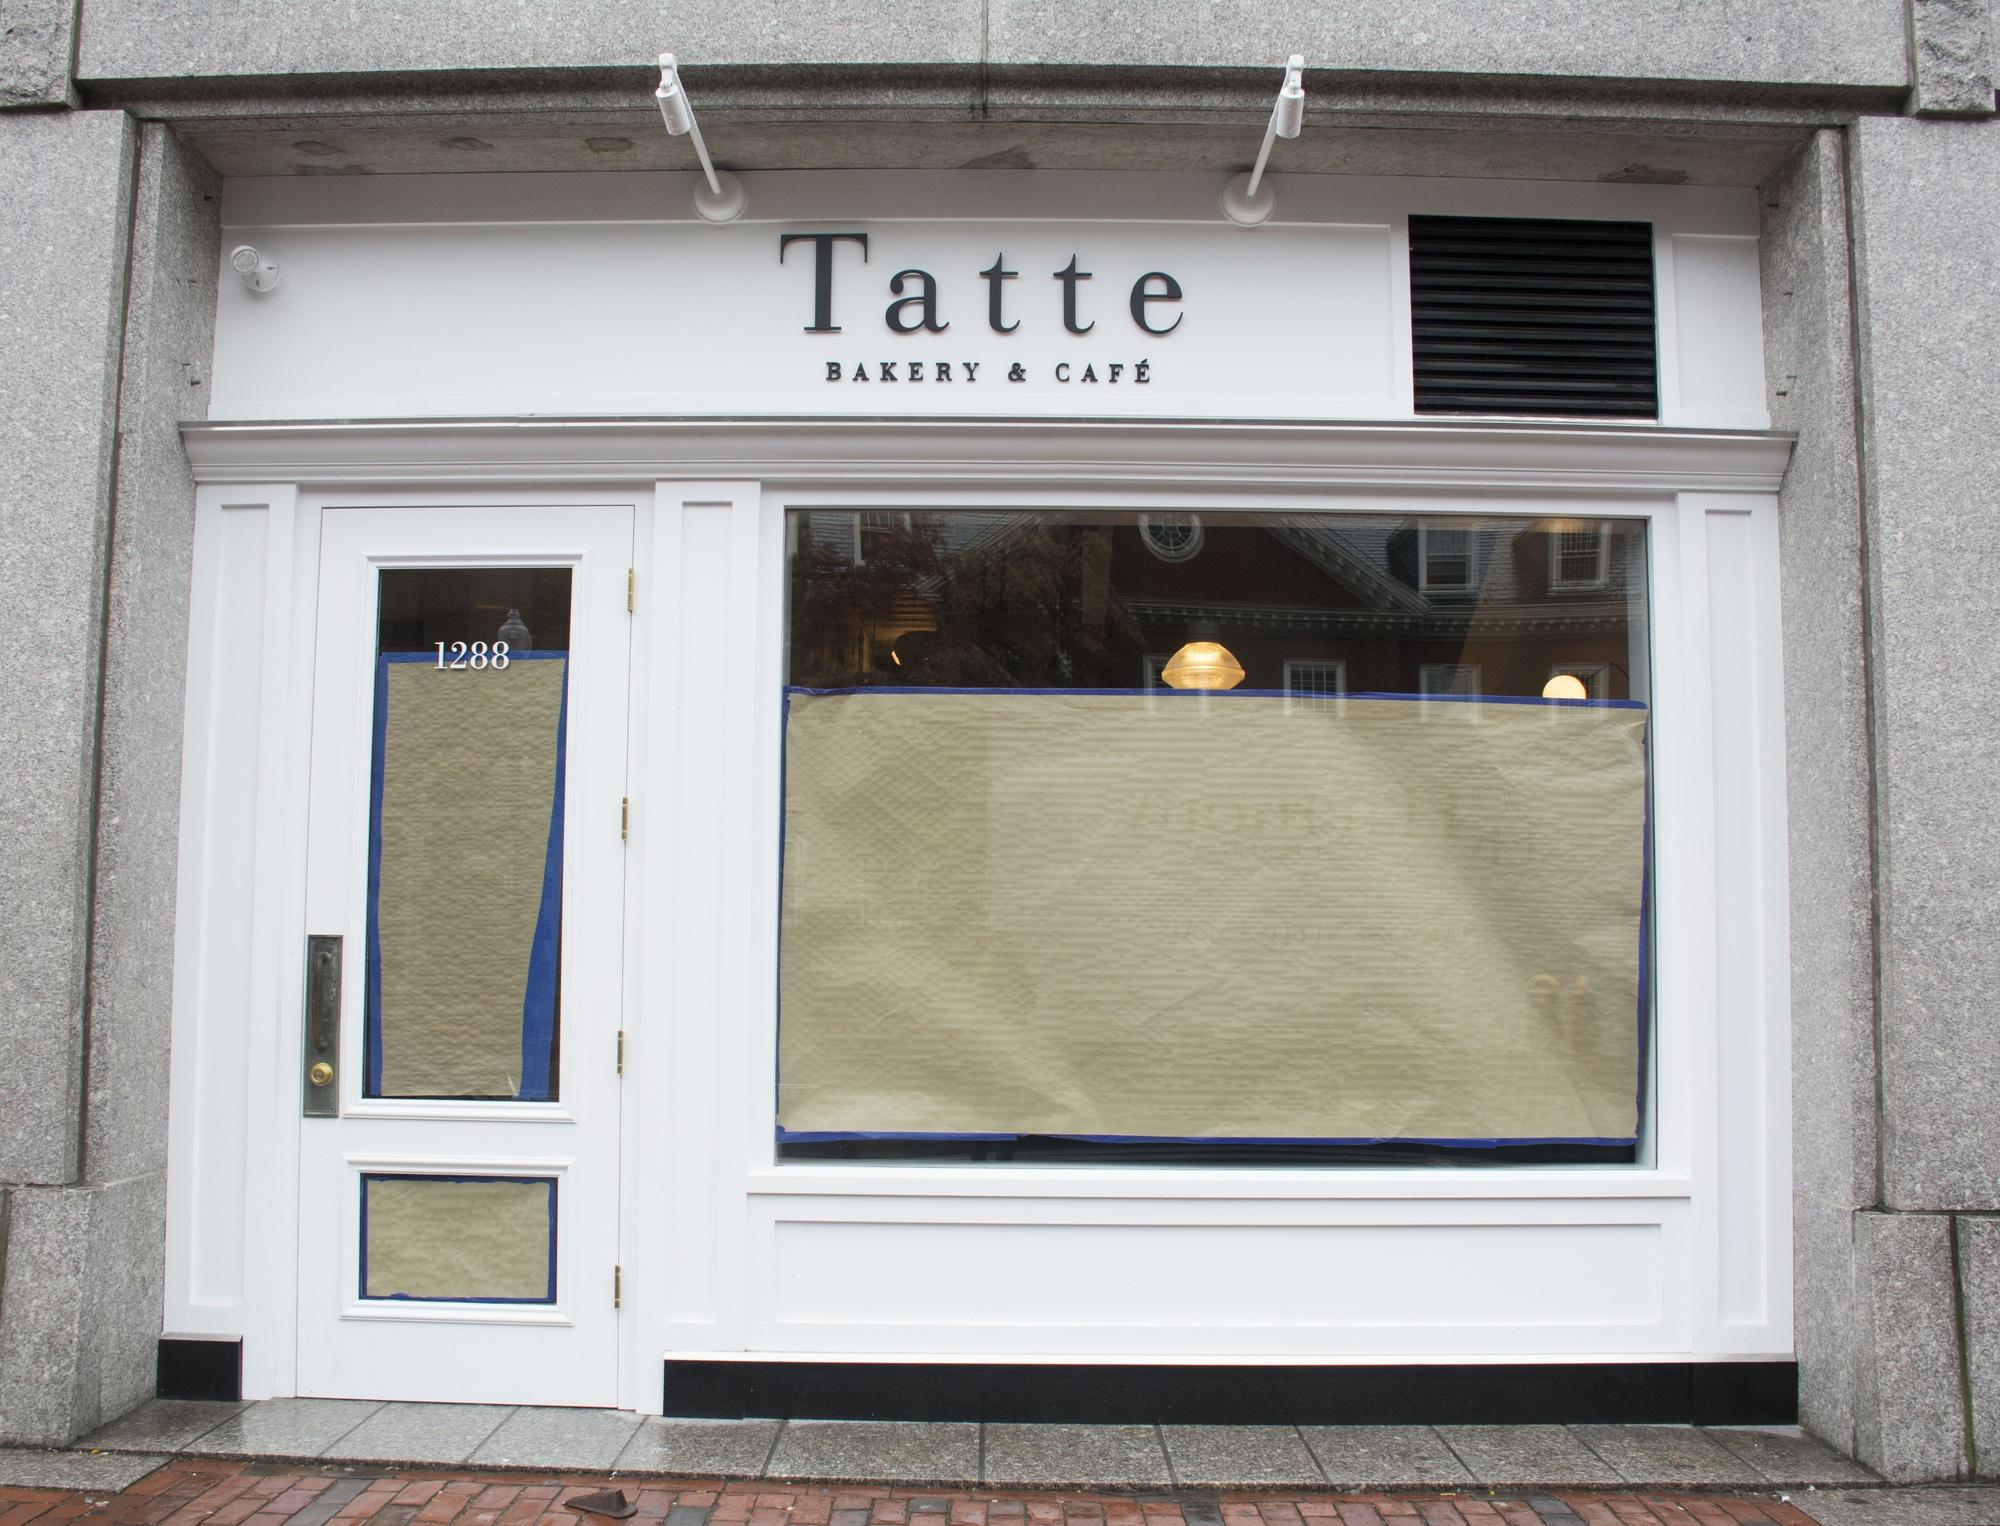 Tatte Bakery & Cafe, one of several new establishments in Harvard Square, is set to open its doors within the next week.